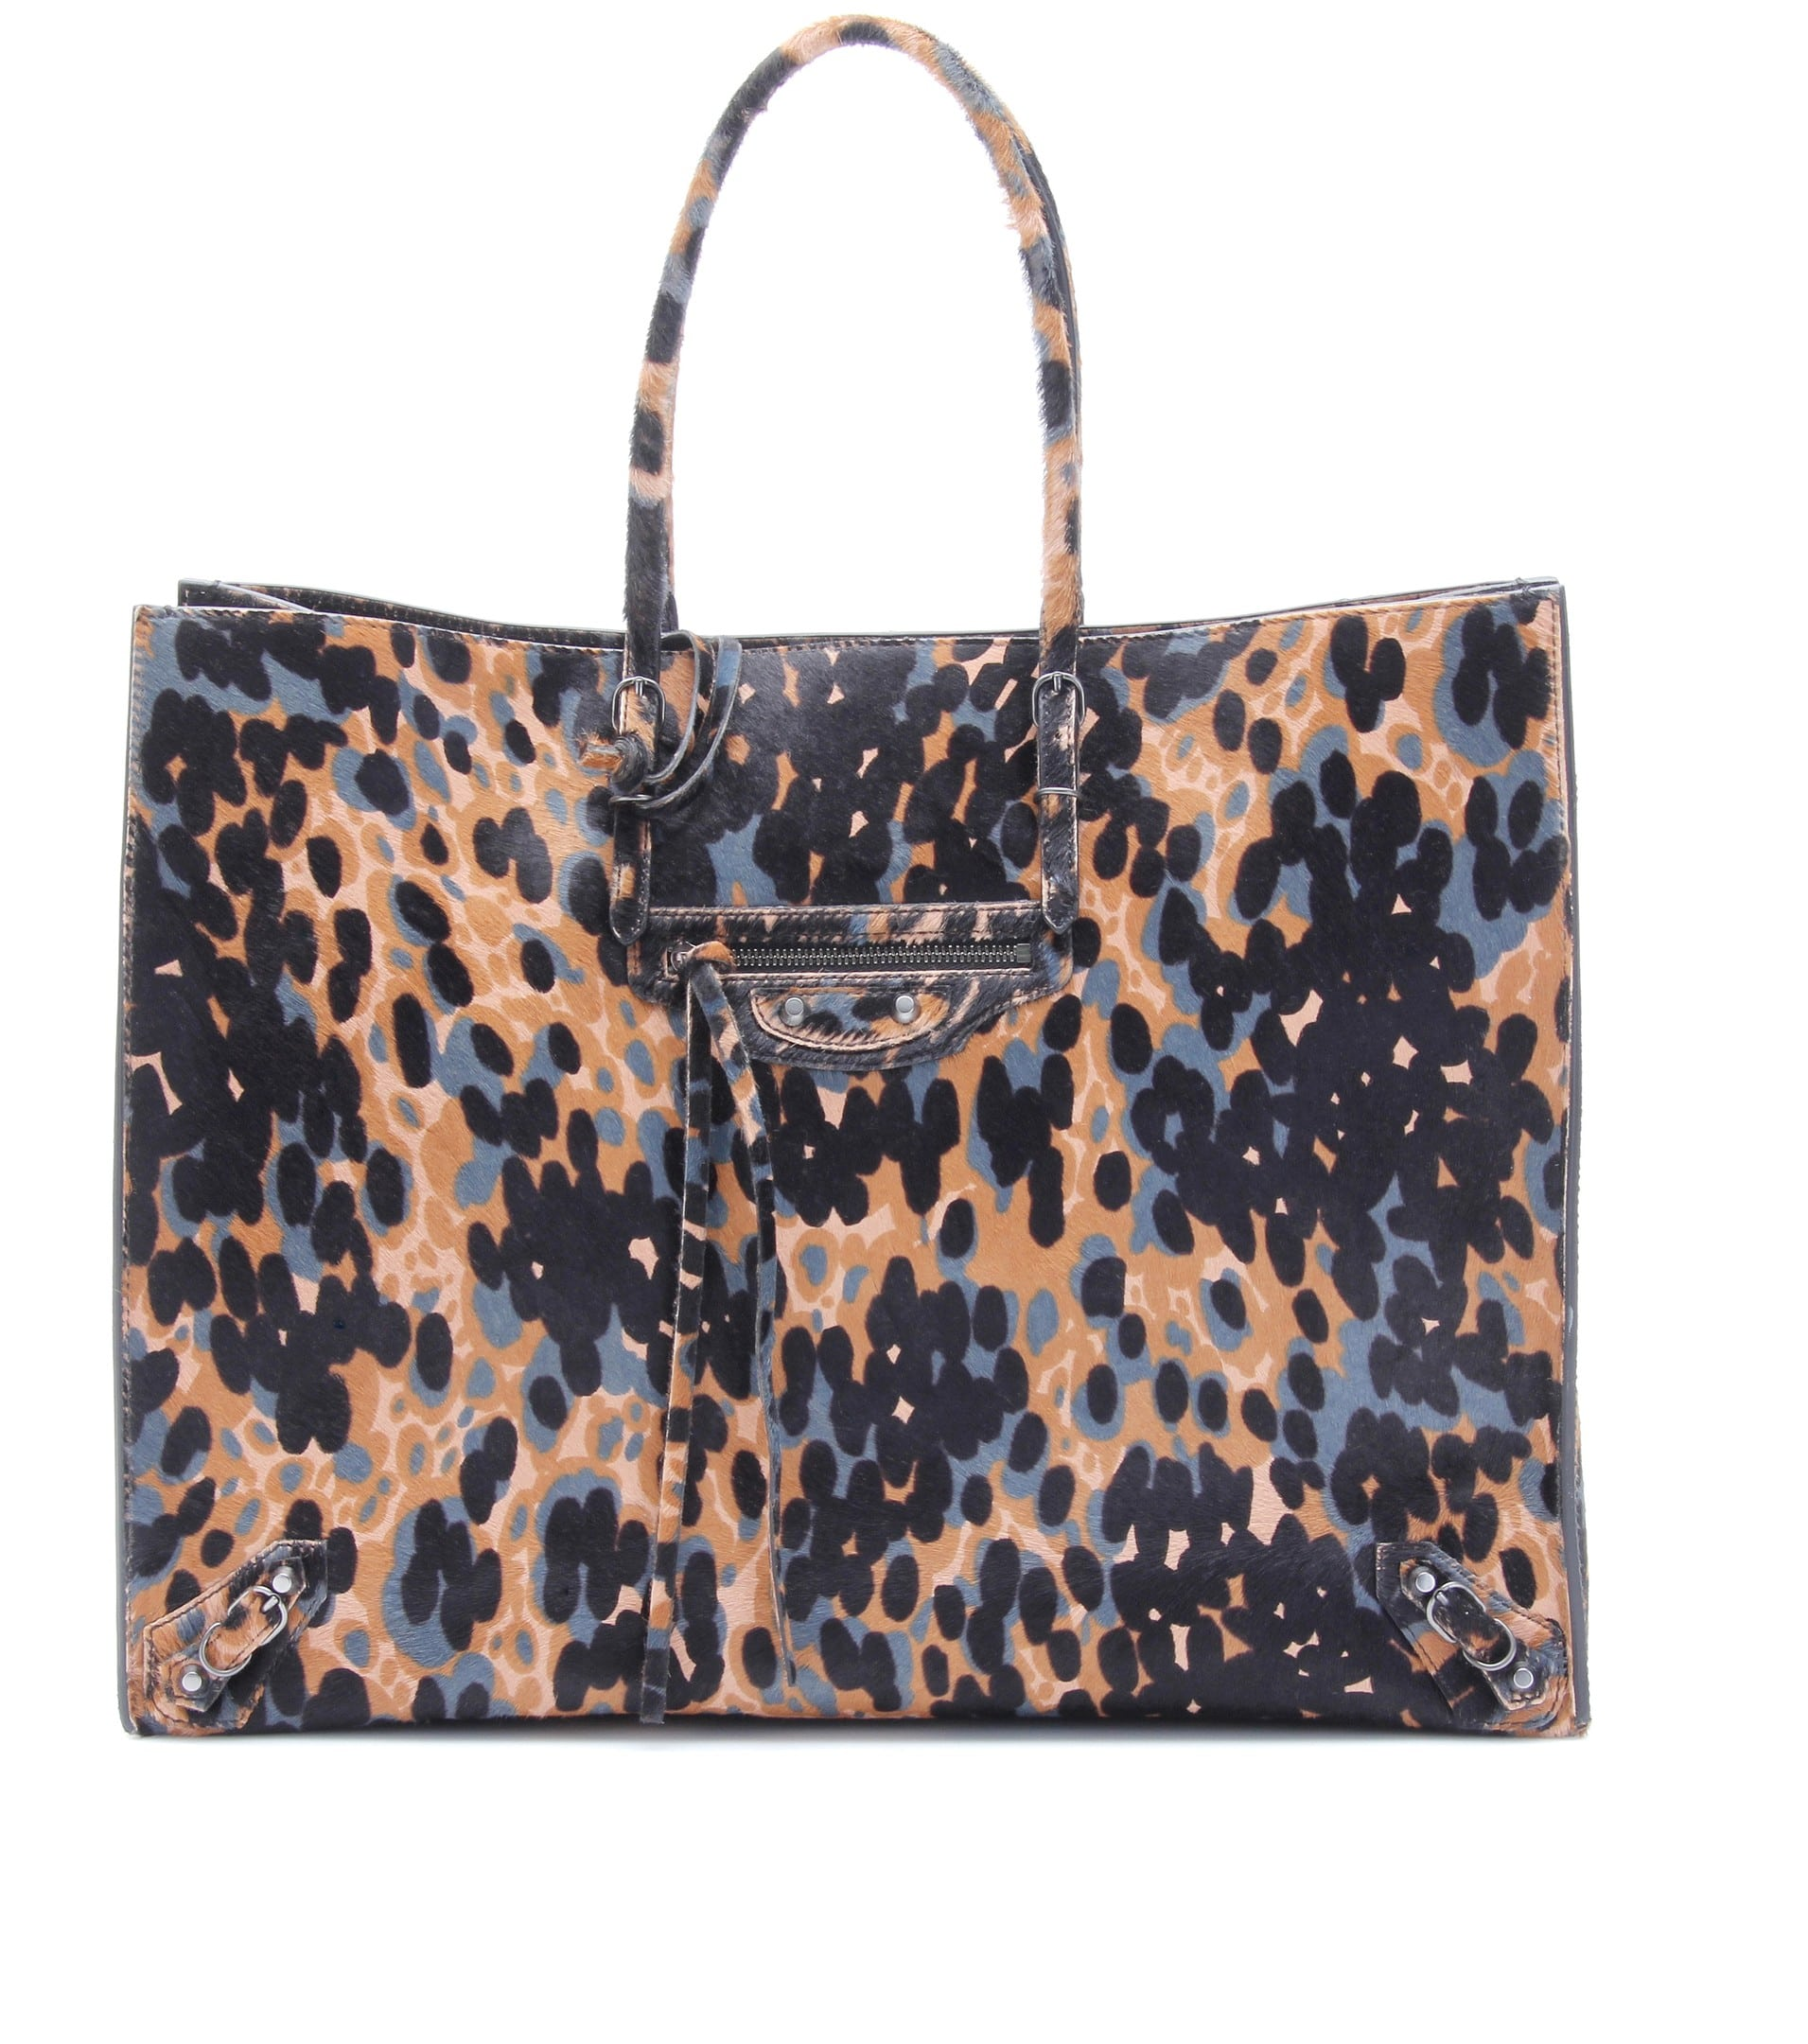 41d2a8181f7c Top 10 Animal Print Bags For Fall Winter 2016